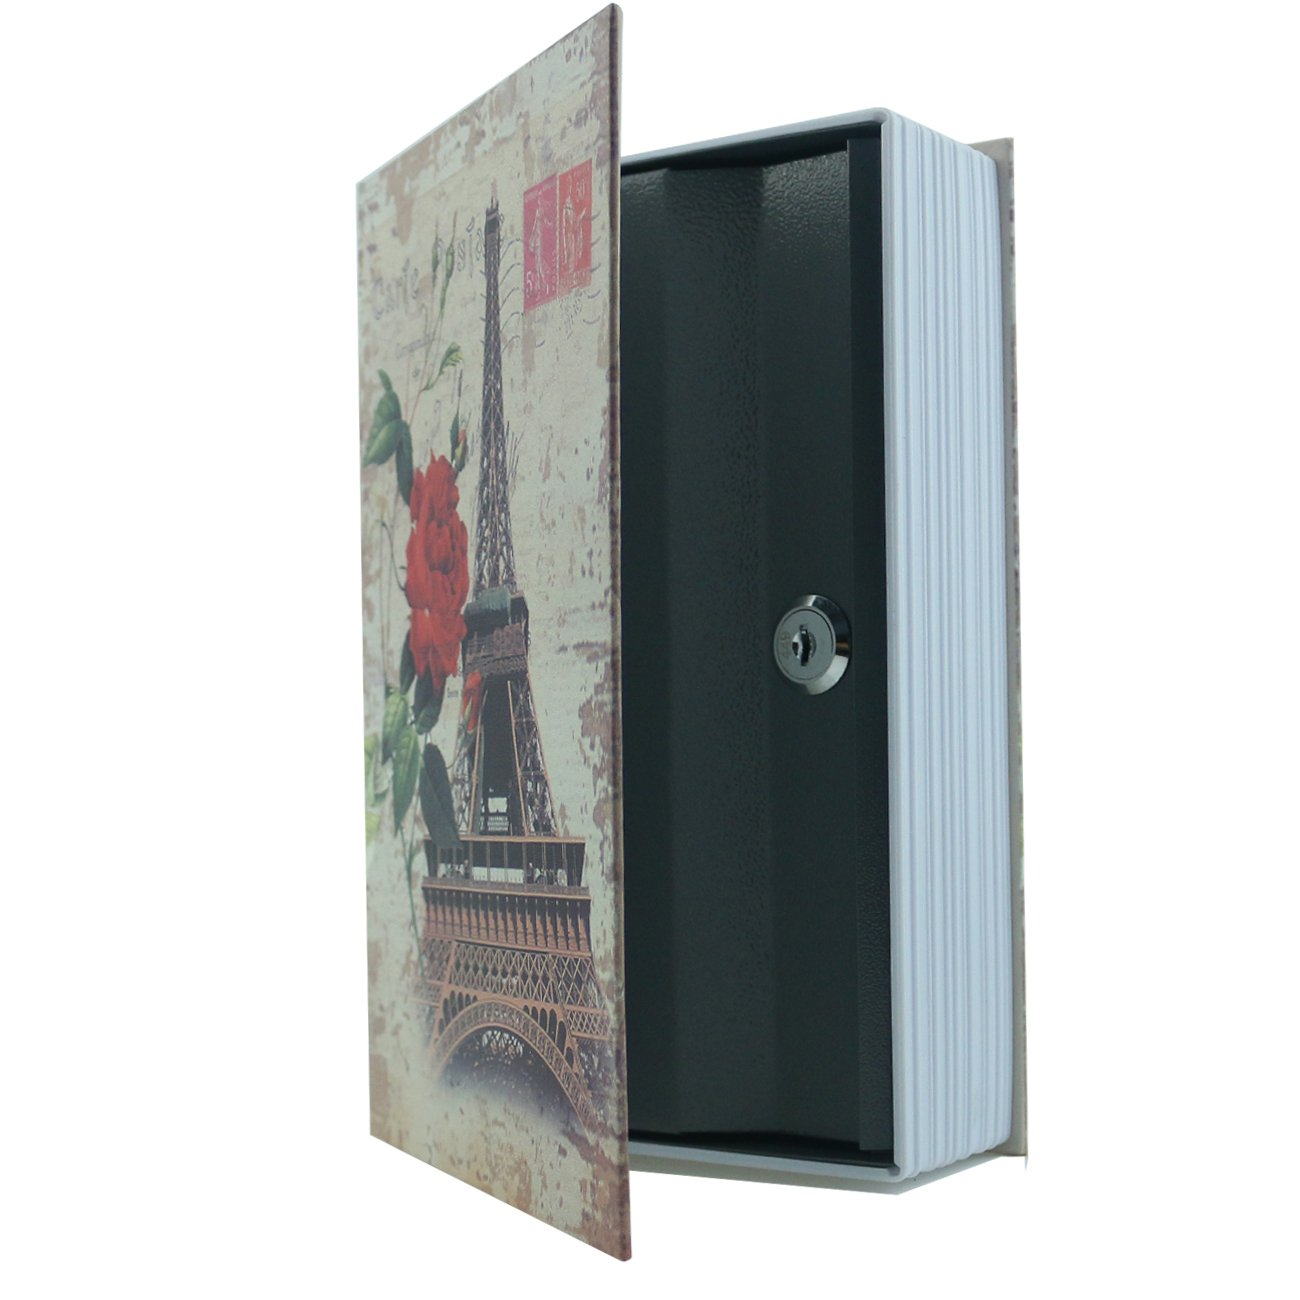 Ogrmar 9.4''X6.1''X2.2'' Book Diversion Hidden Book Safe With Strong Metal Case inside and Key Lock (Safe Book -Eiffel Tower Pattern)